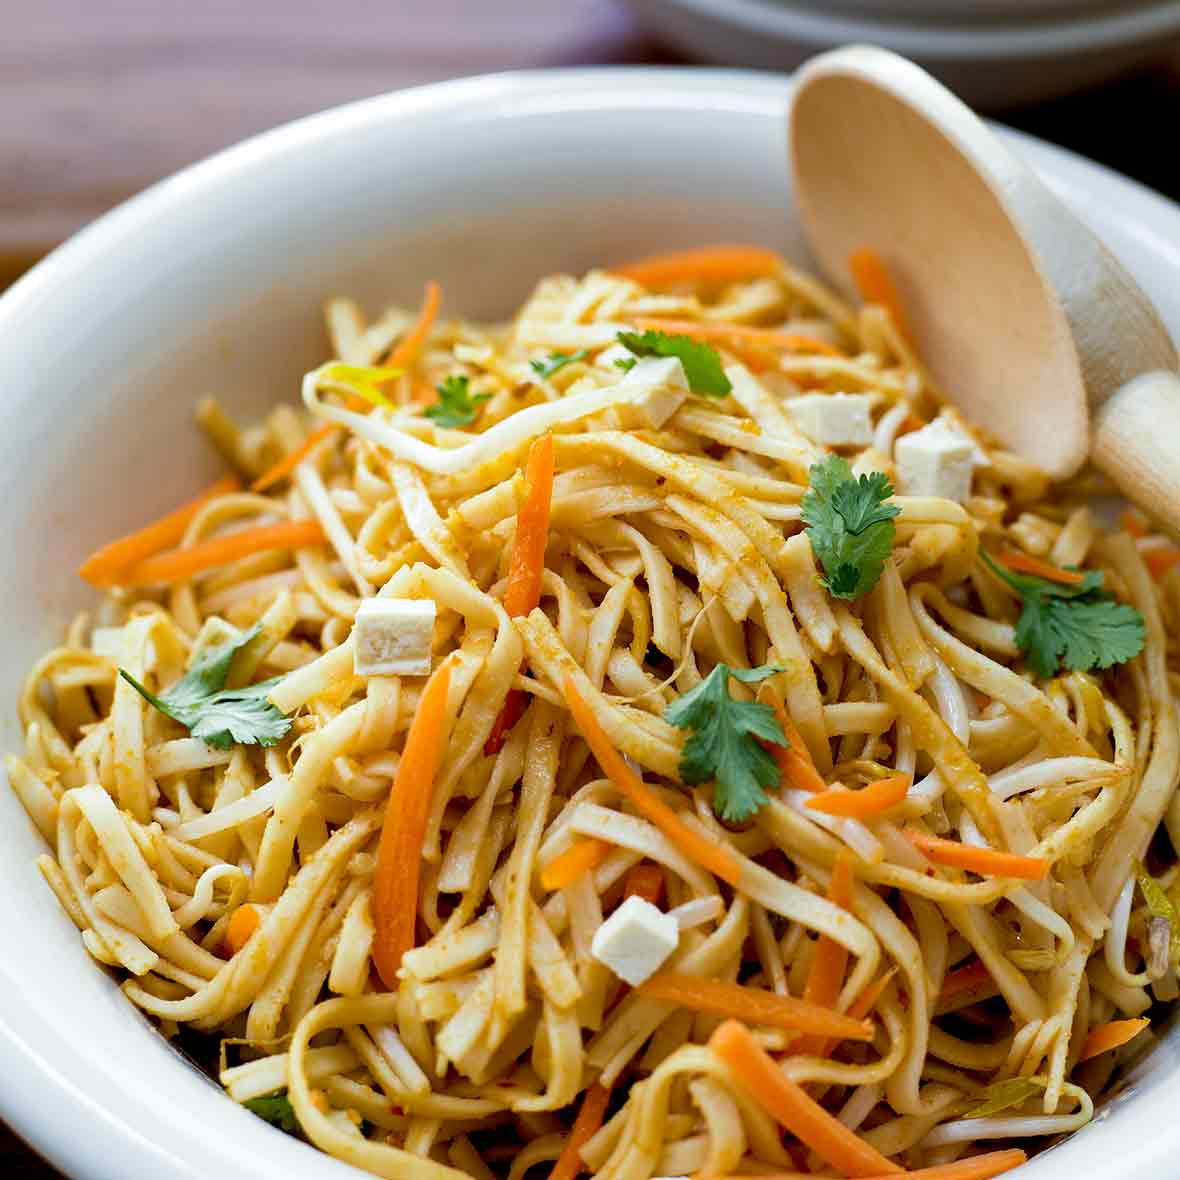 salad receipe asian Broccoli noodles with